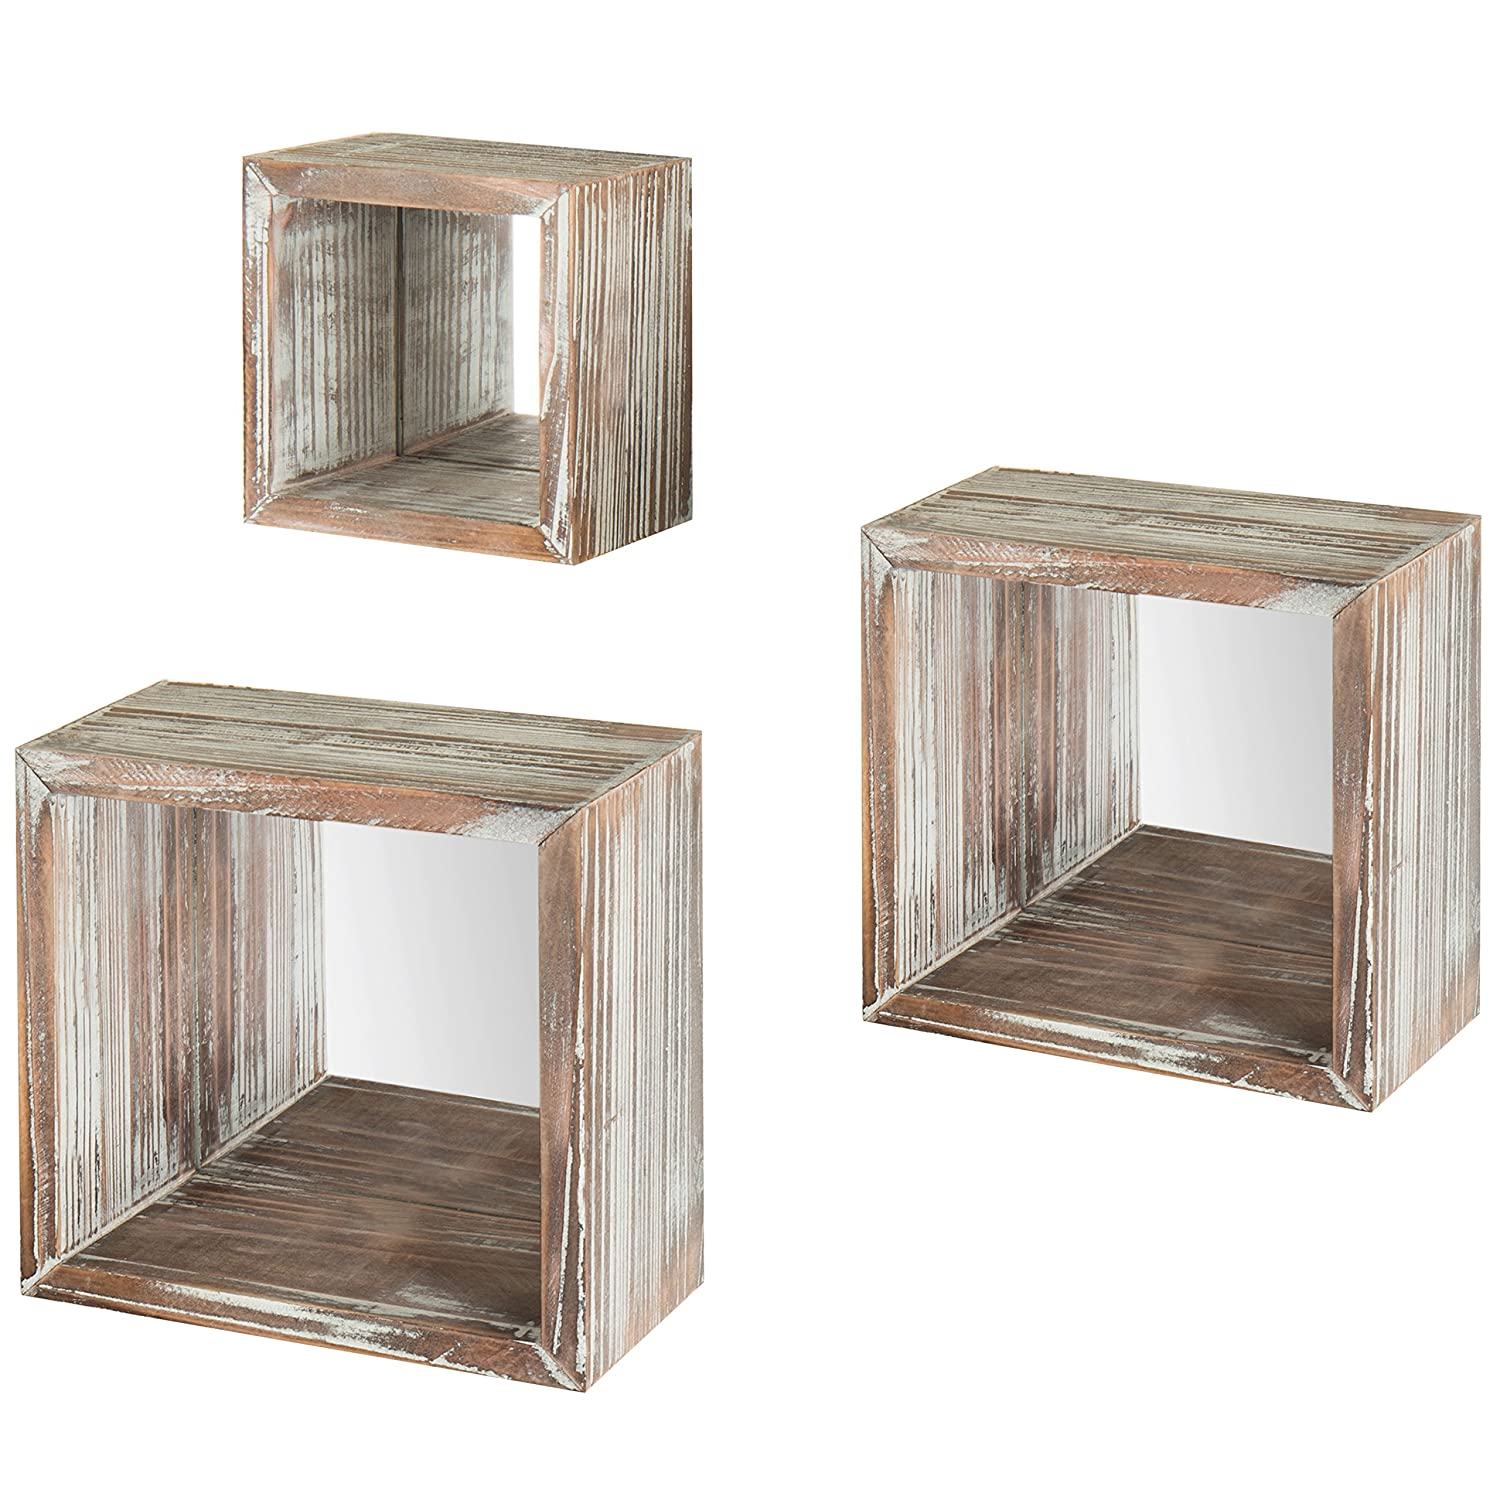 MyGift Set of 3 Square Torched Wood Wall-Mounted Shadow Boxes with Reflective Backing